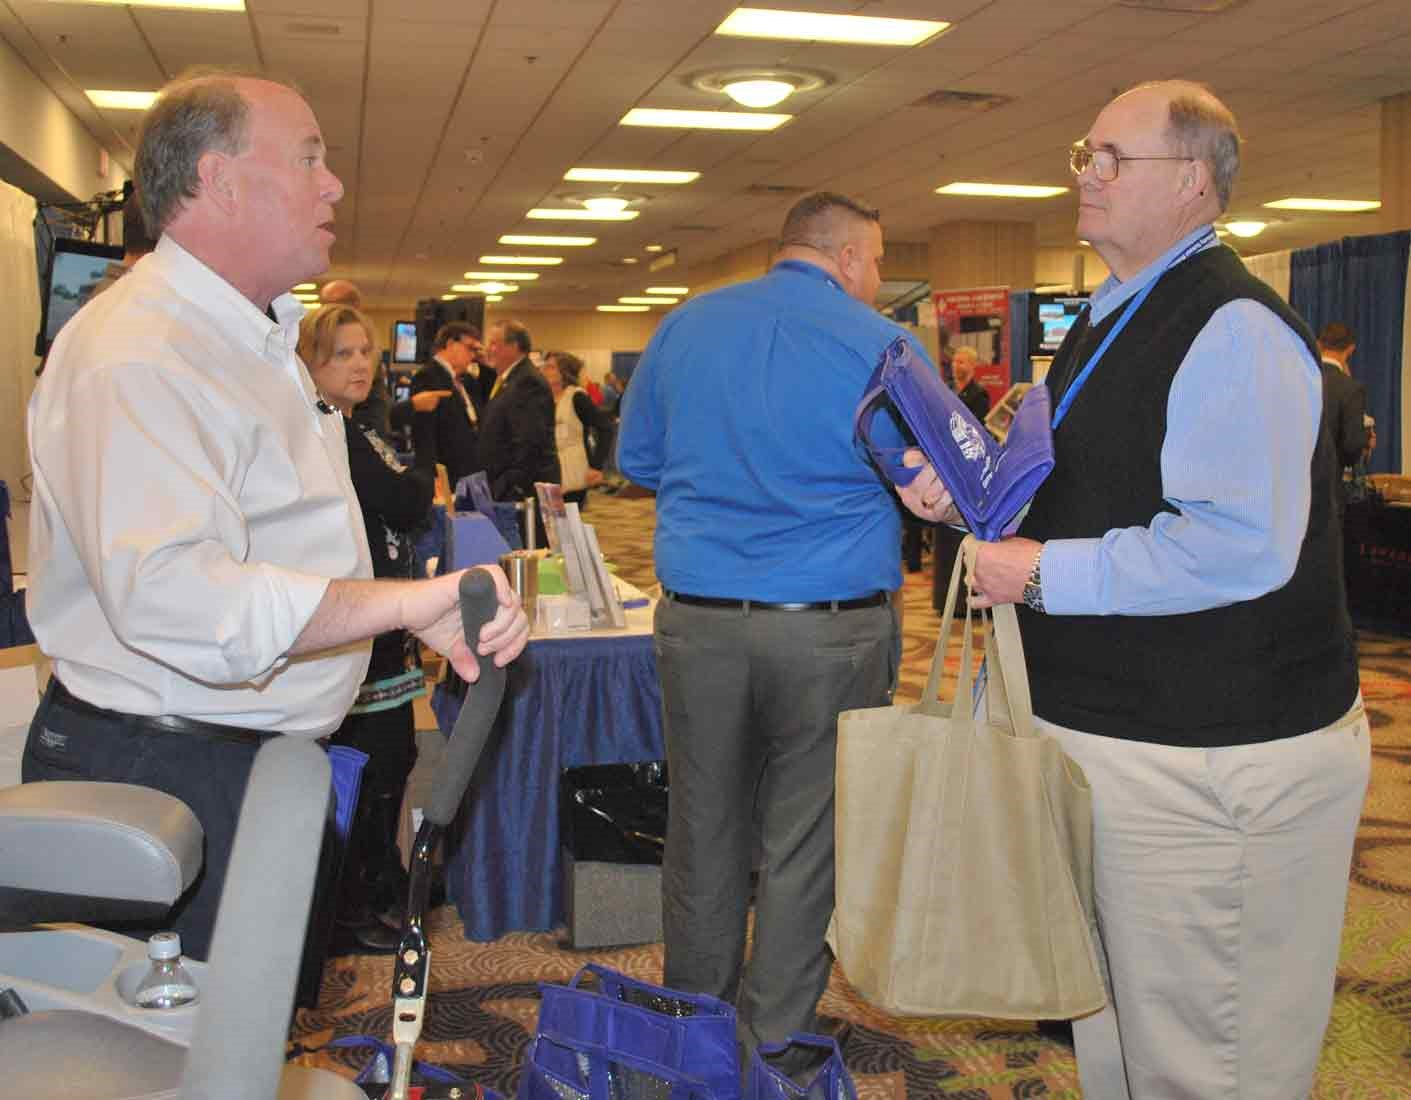 Jessamine County board member Gene Peel, right, talks with Tom Underwood with the Kentucky Propane Education and Research Council at the group's Trade Show booth.